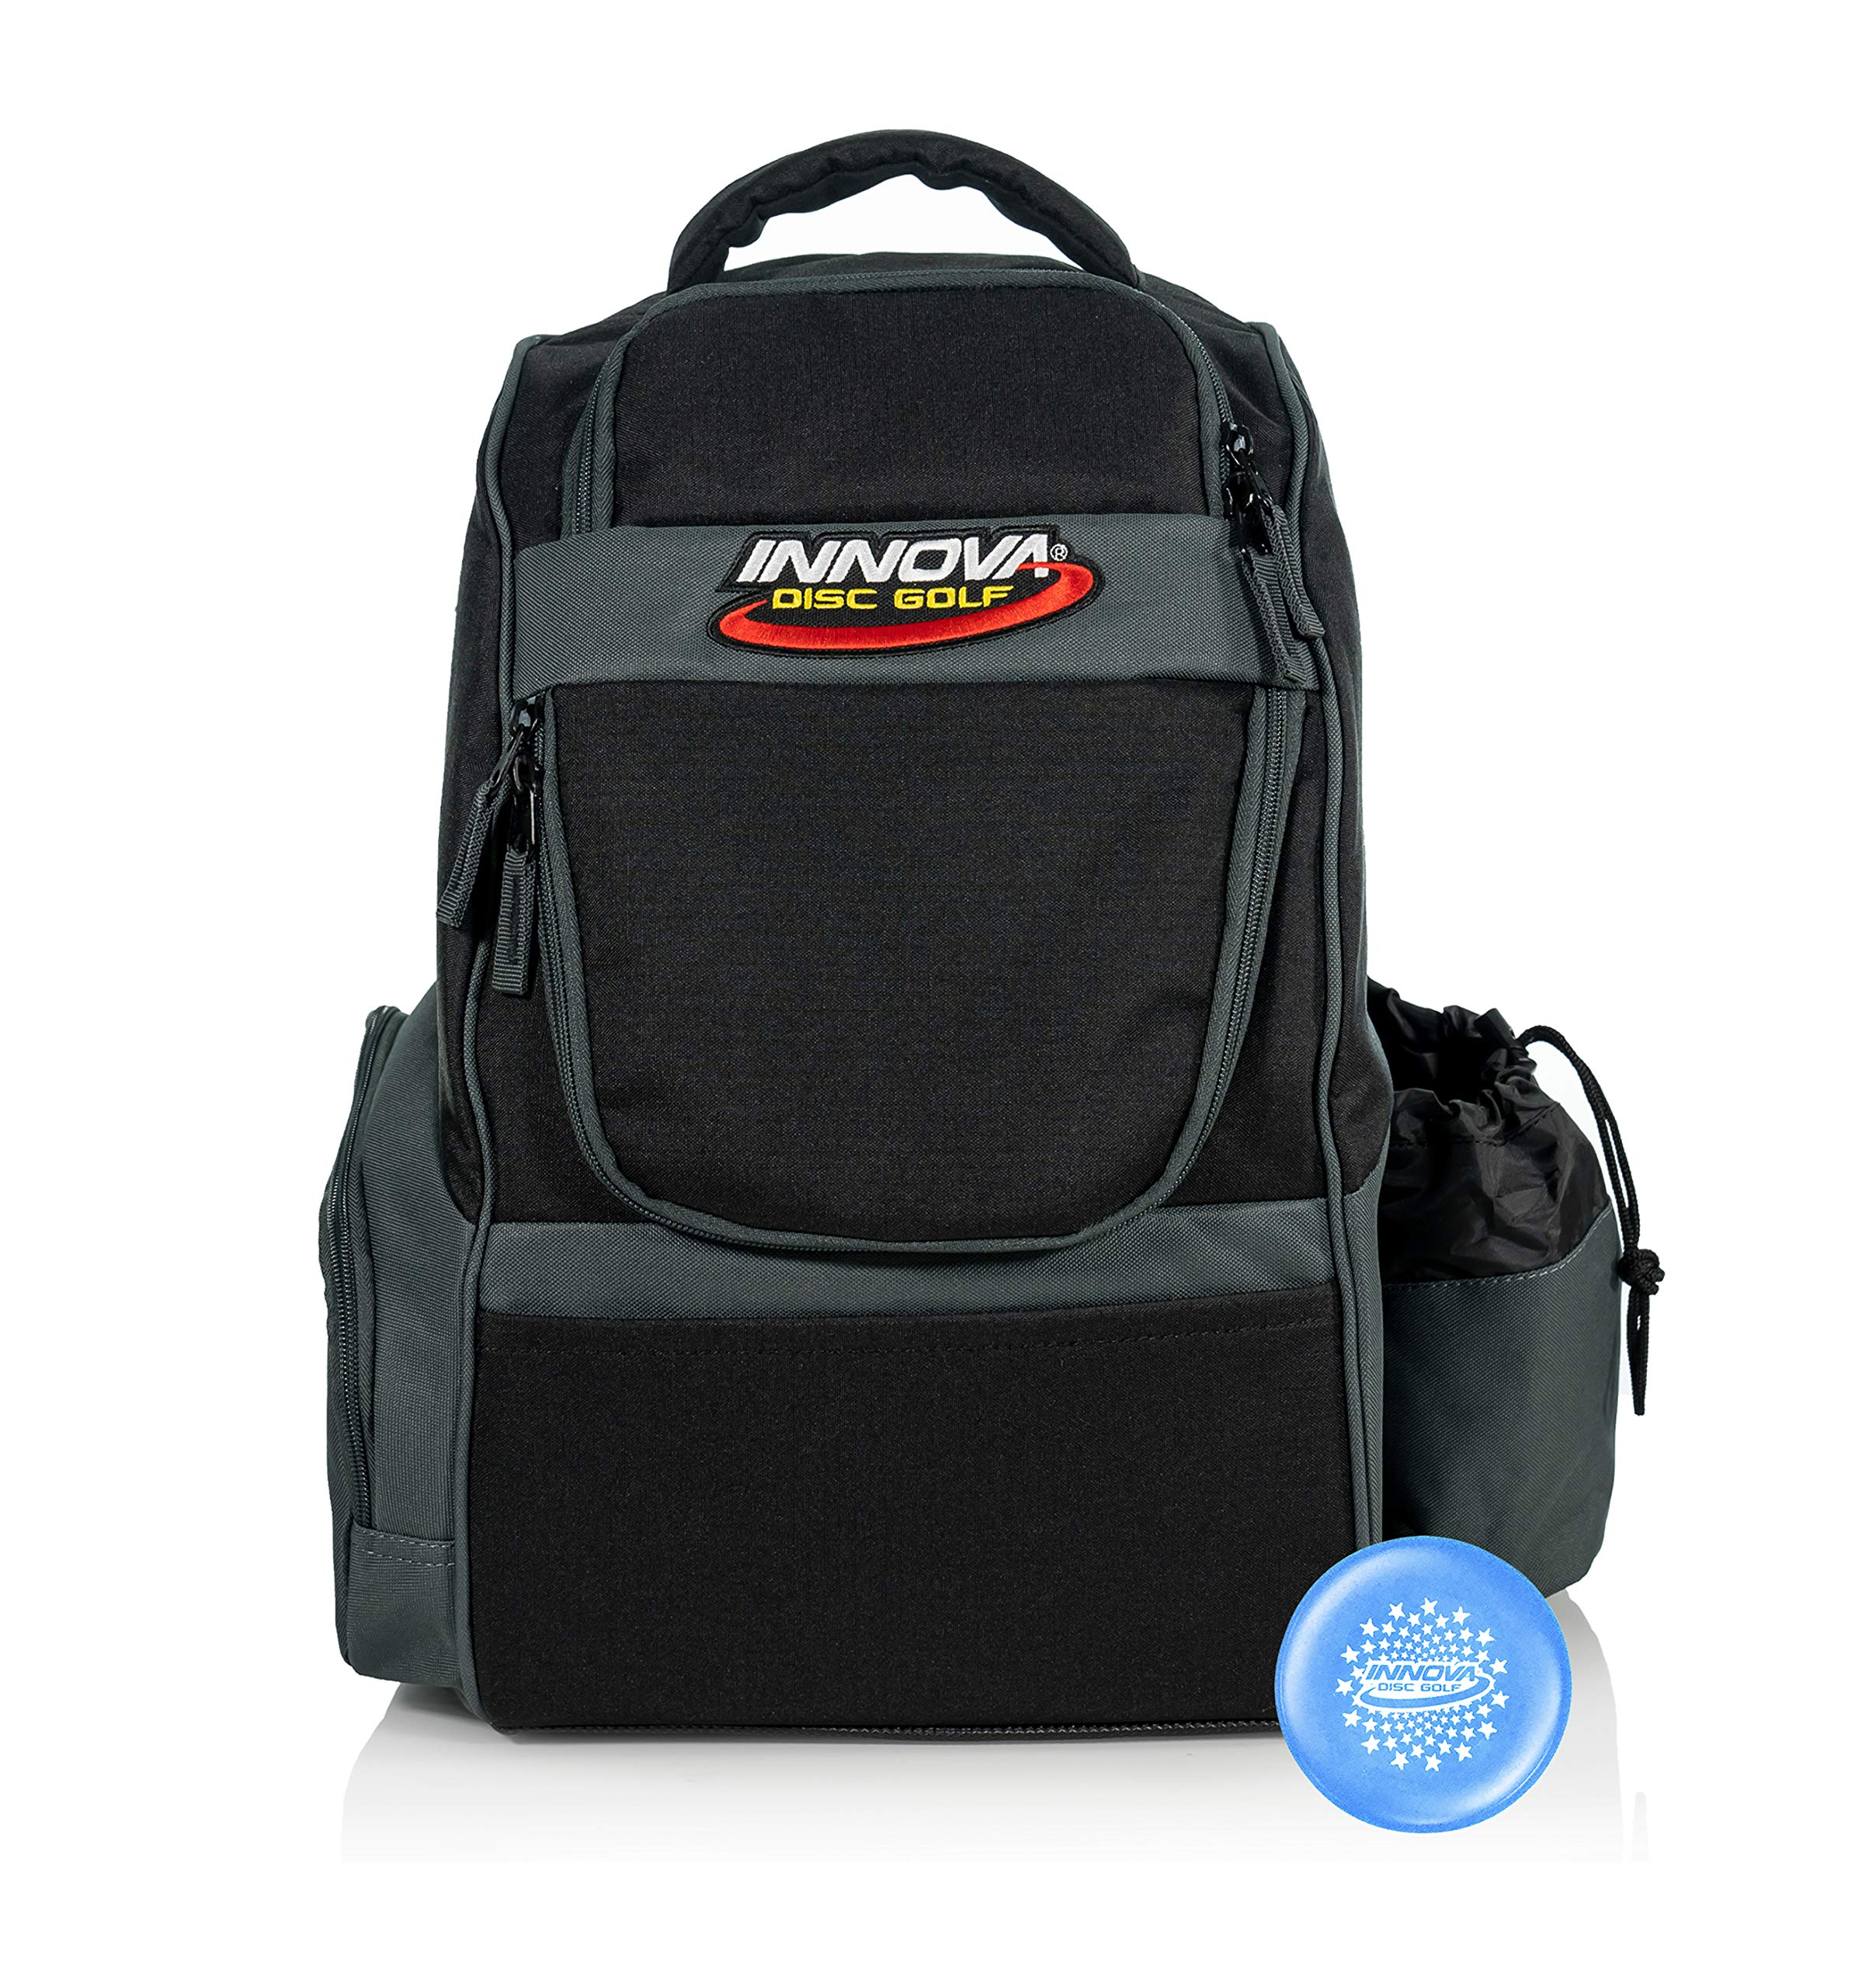 Innova Adventure Pack Backpack Disc Golf Bag - Holds 25 Discs - Lightweight - Includes Innova Limited Edition Stars Mini Marker (Black/Grey)